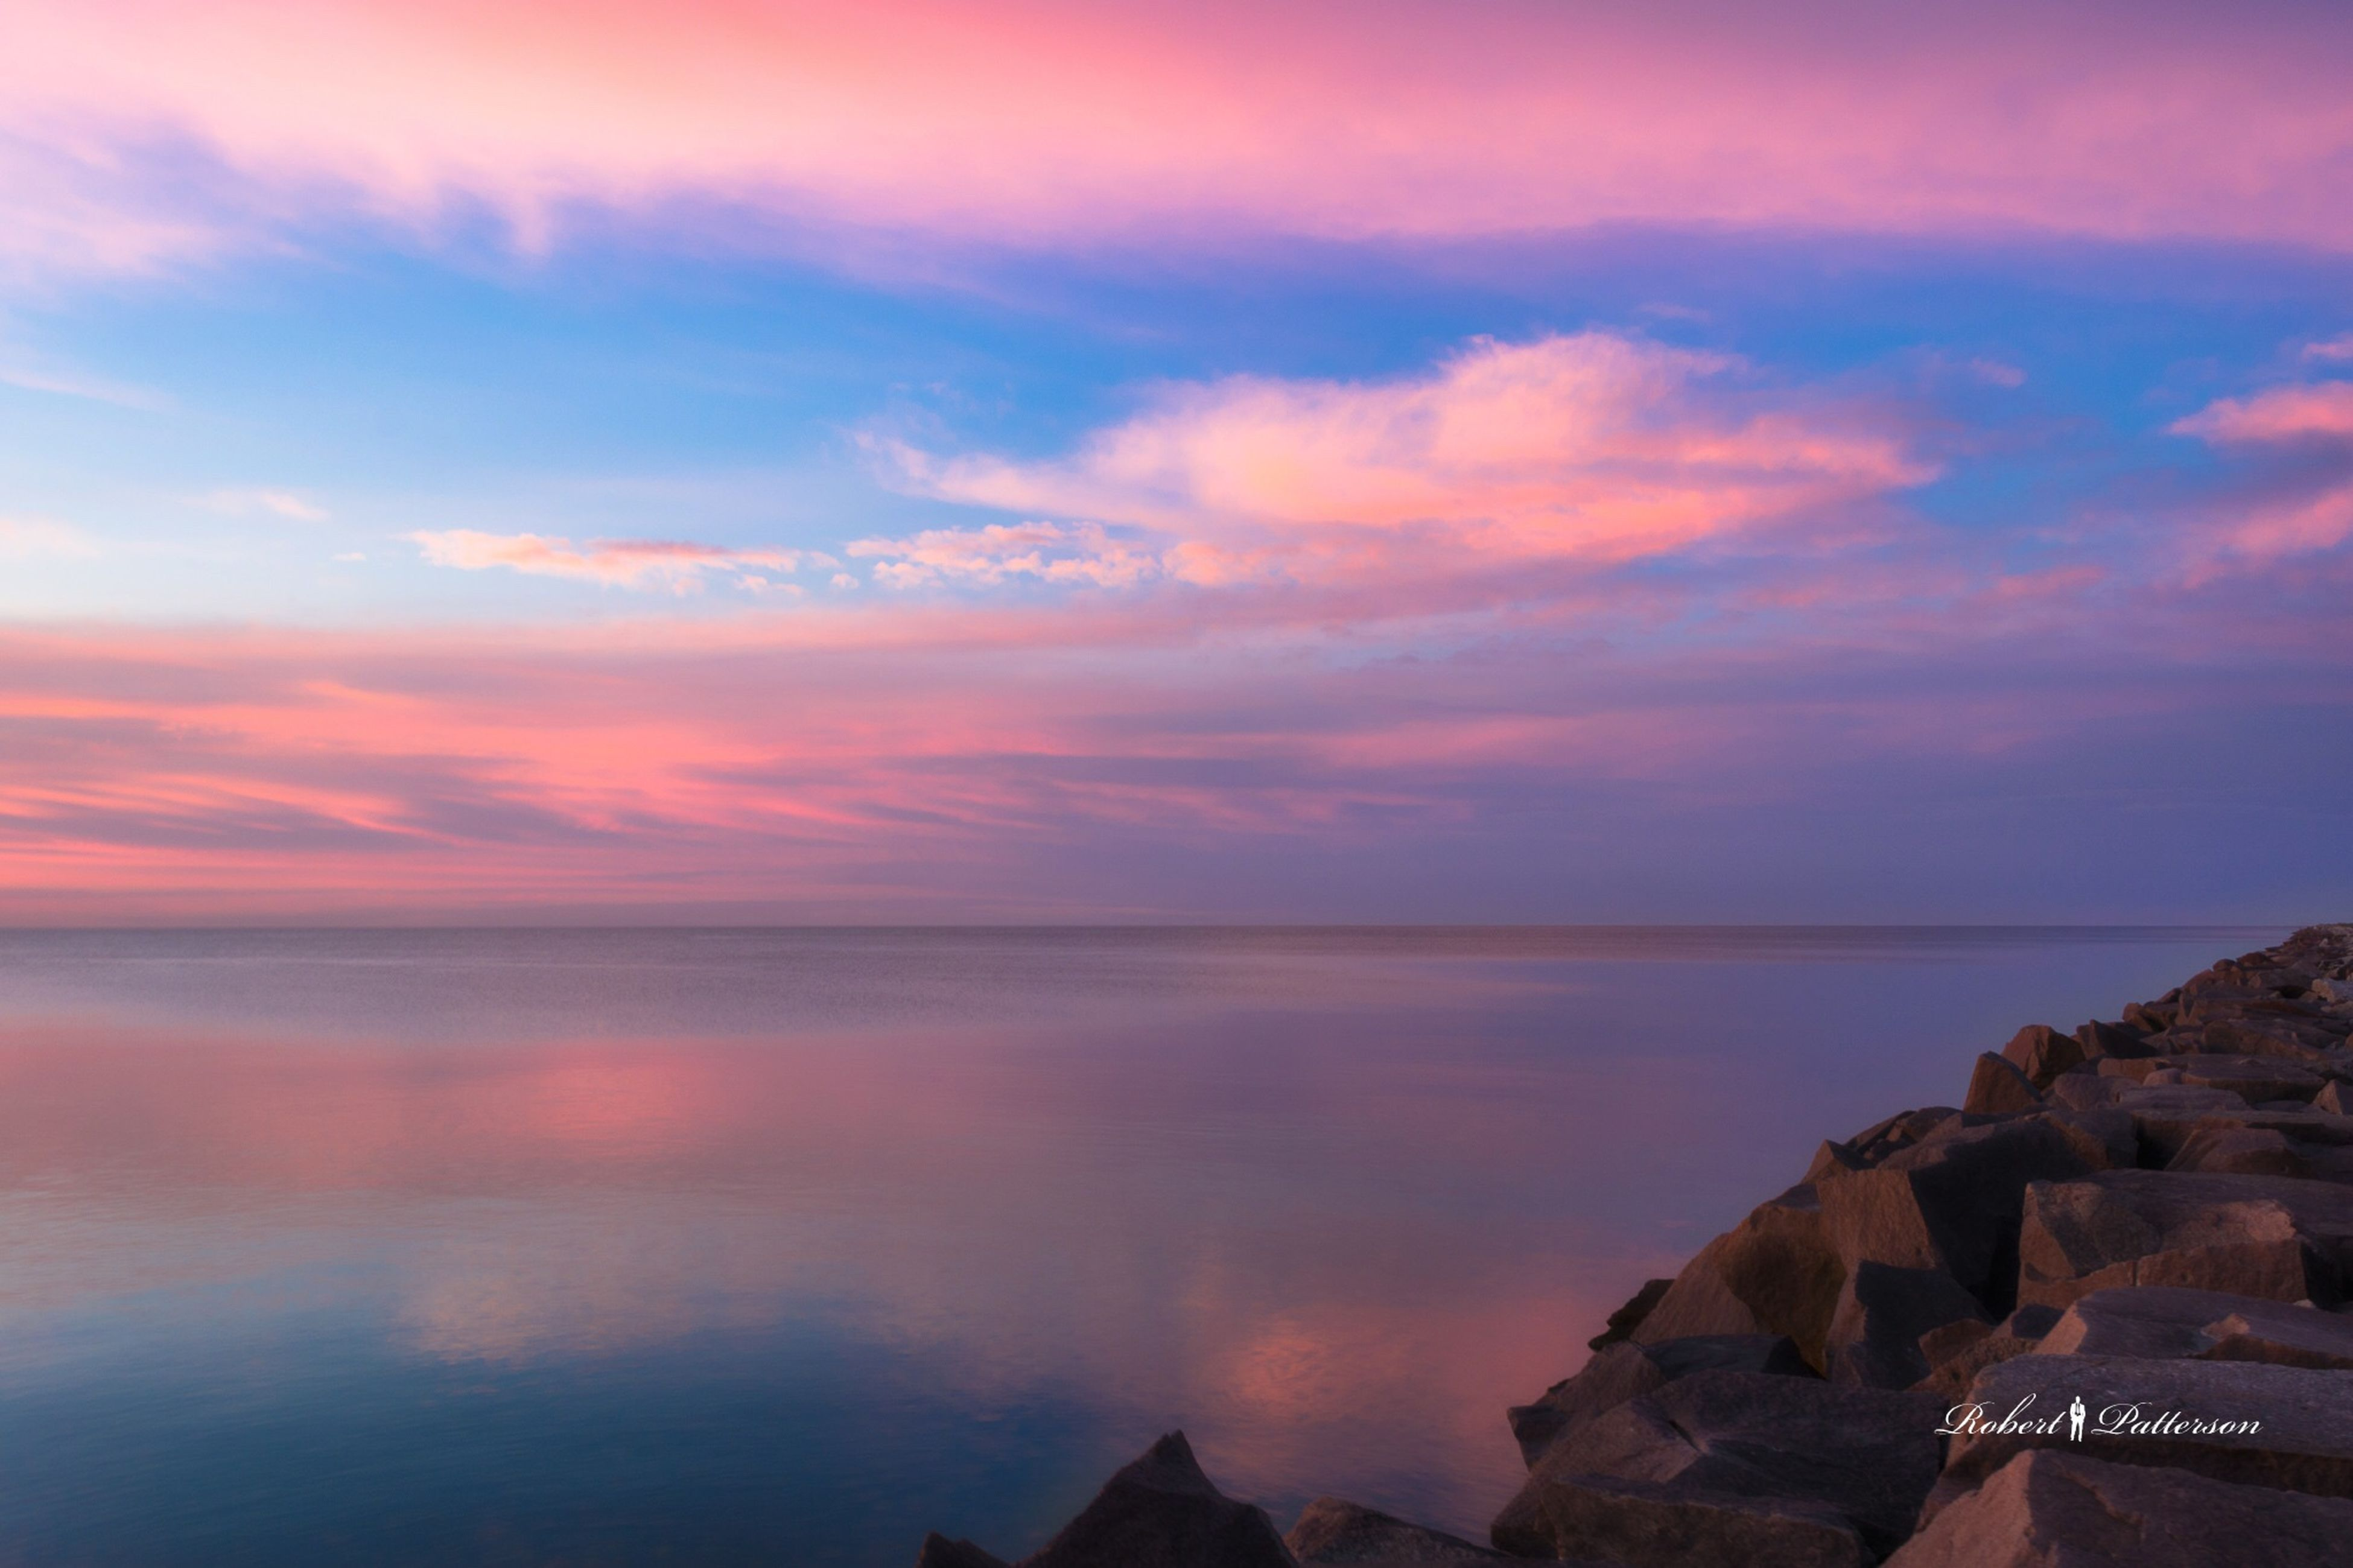 tranquil scene, water, sea, scenics, tranquility, sunset, beauty in nature, horizon over water, cloud - sky, rock - object, sky, tourism, vacations, idyllic, nature, atmosphere, travel destinations, non-urban scene, seascape, majestic, atmospheric mood, dramatic sky, rock formation, cloudscape, distant, coastal feature, remote, orange color, geology, cliff, no people